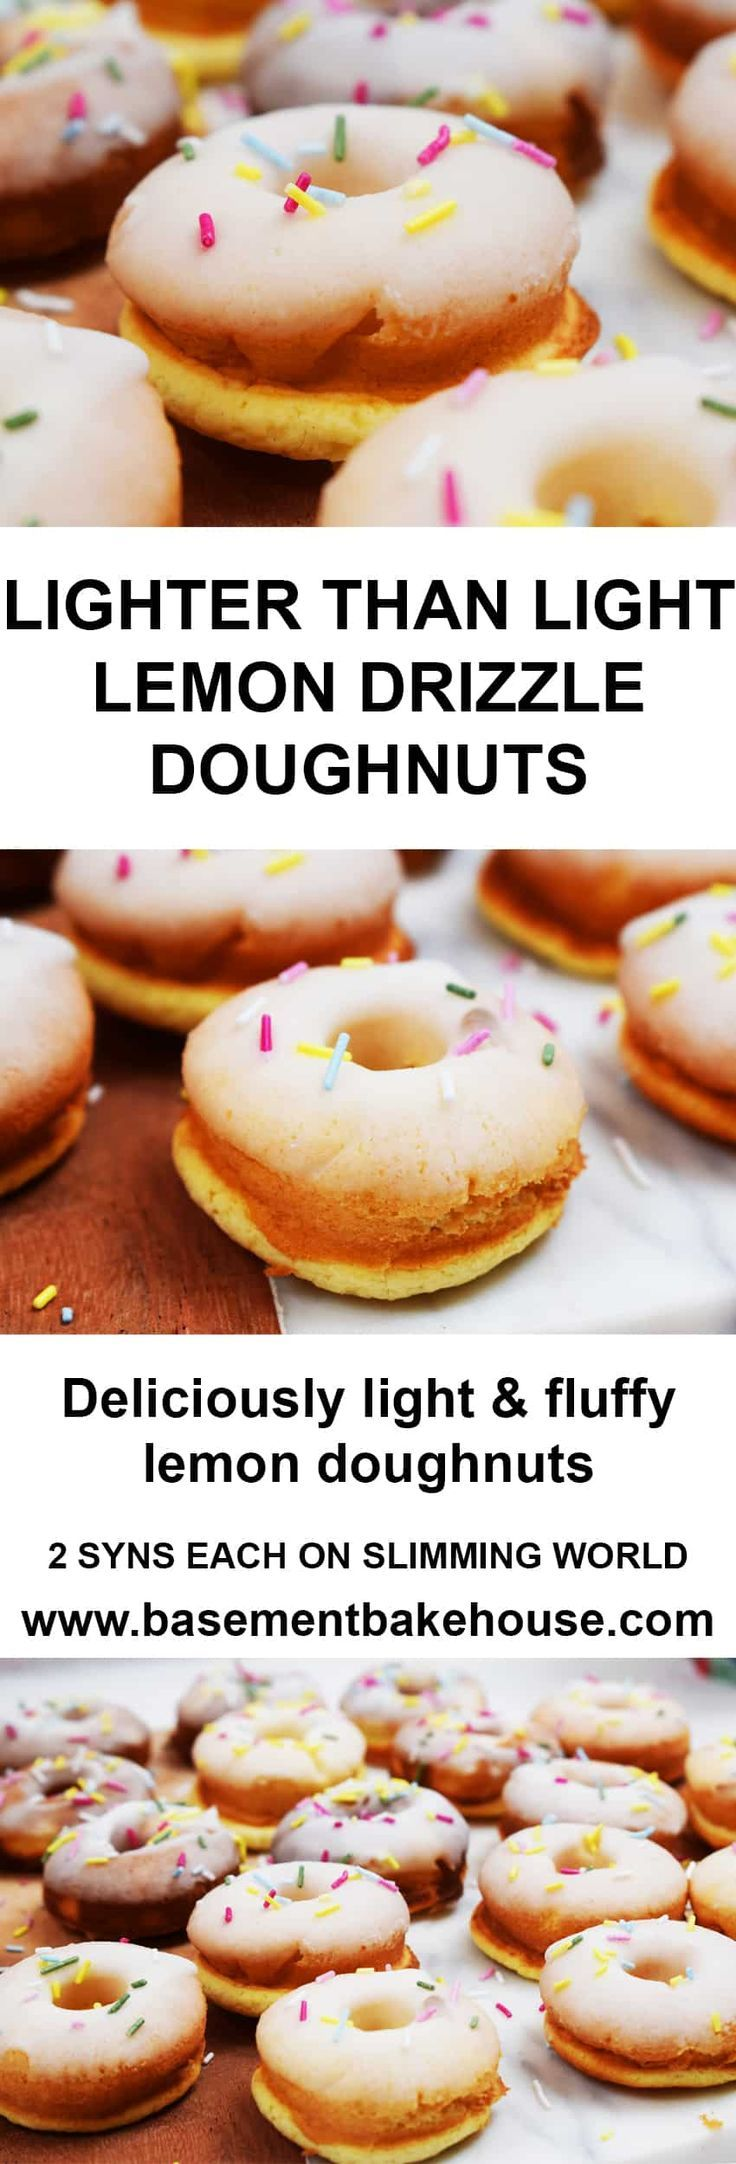 Lighter Than Light Lemon Drizzle Doughnuts - Low Syn on Slimming World - Healthy... -